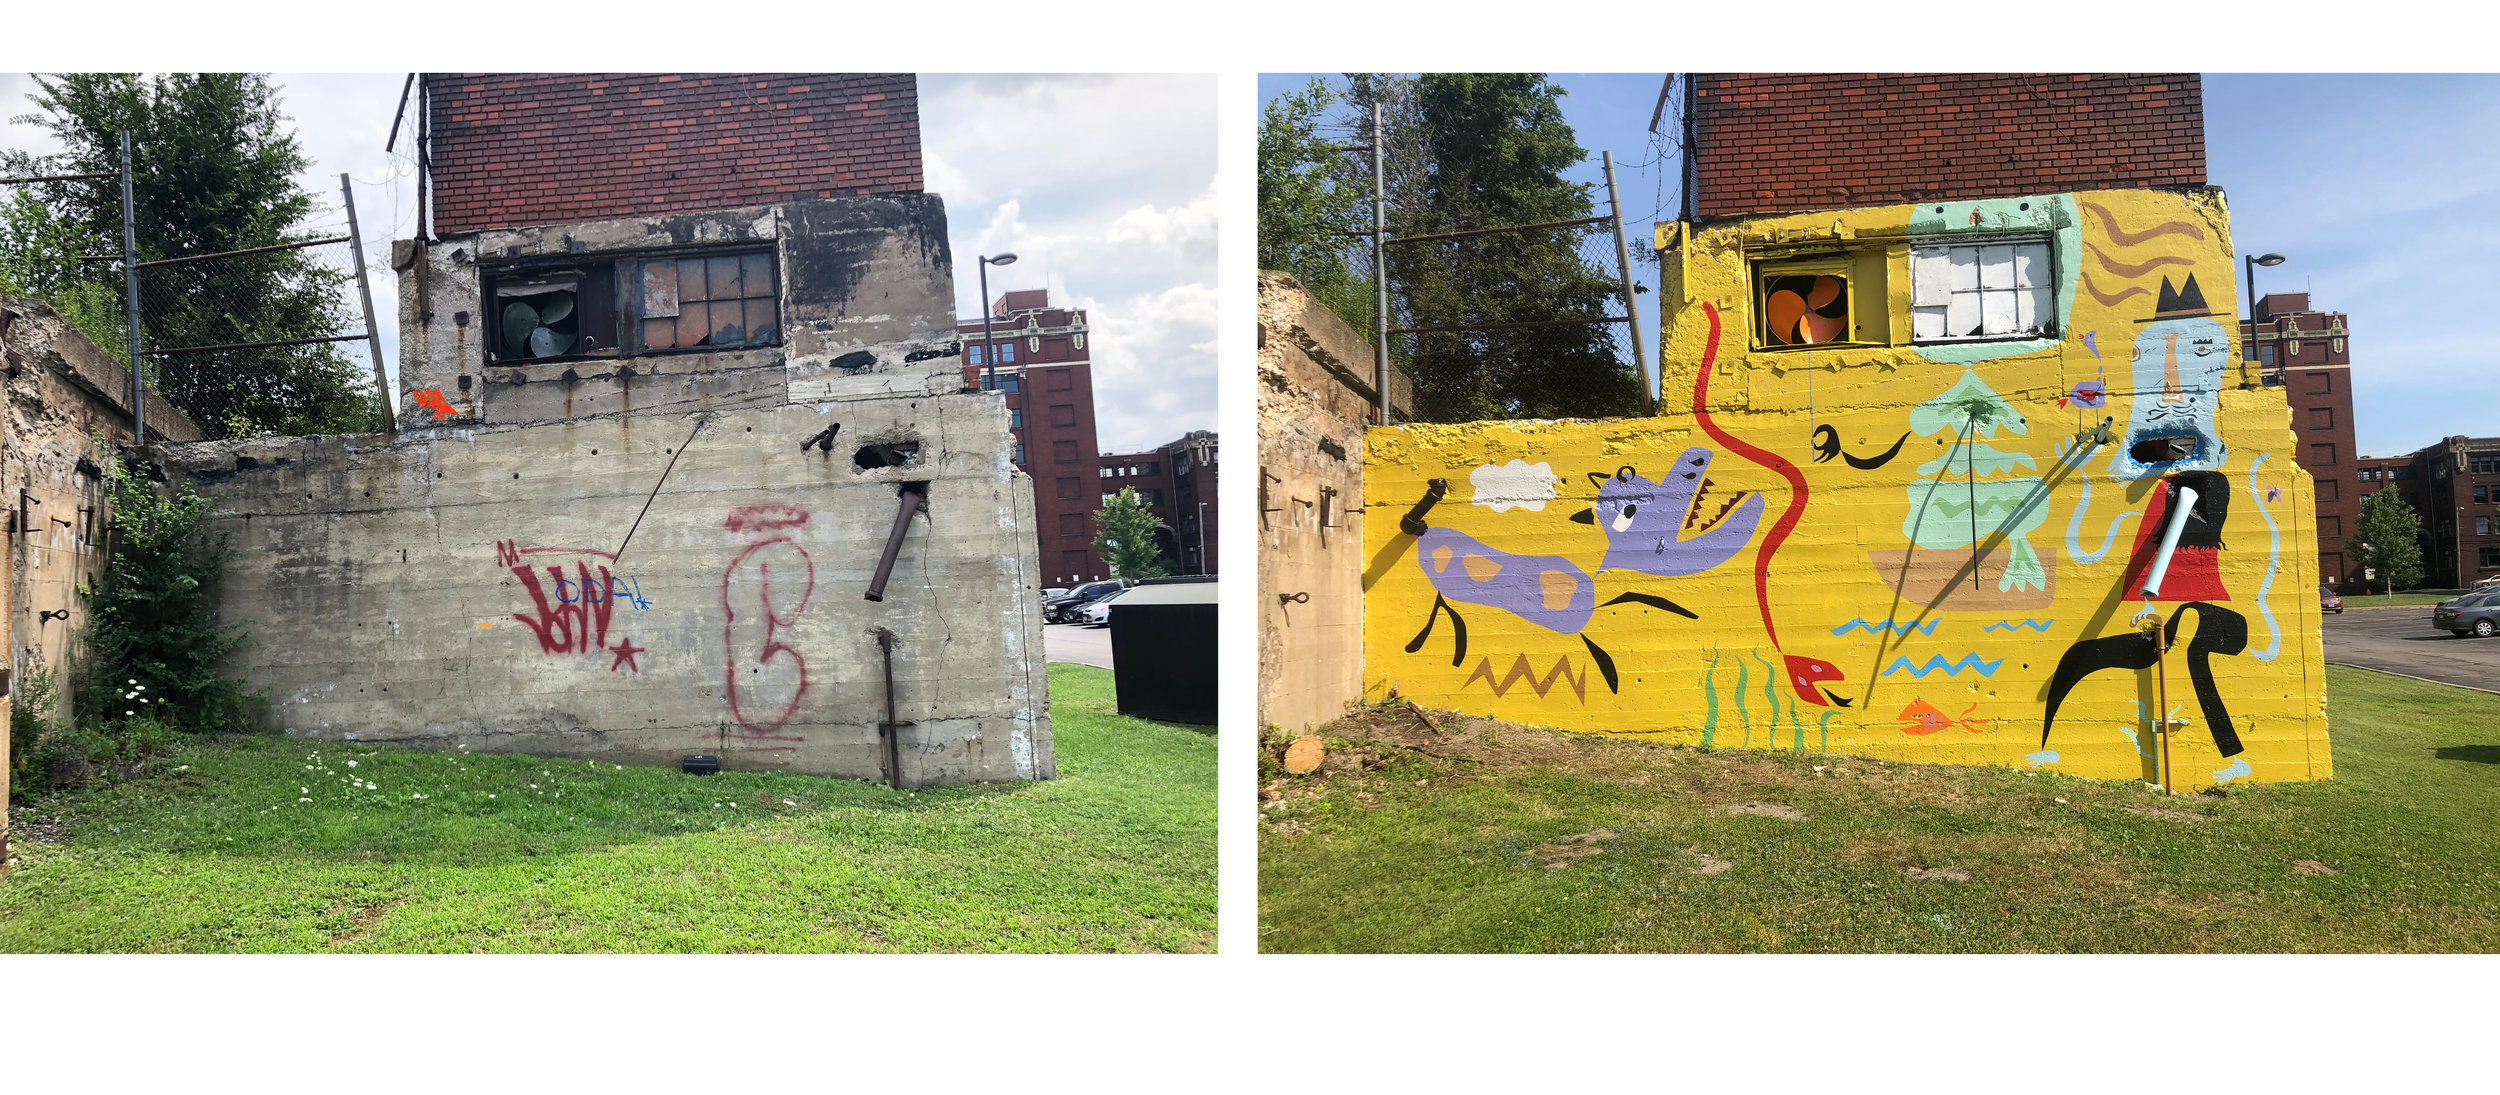 CLEVELAND SUMMER WALL old and new.jpg